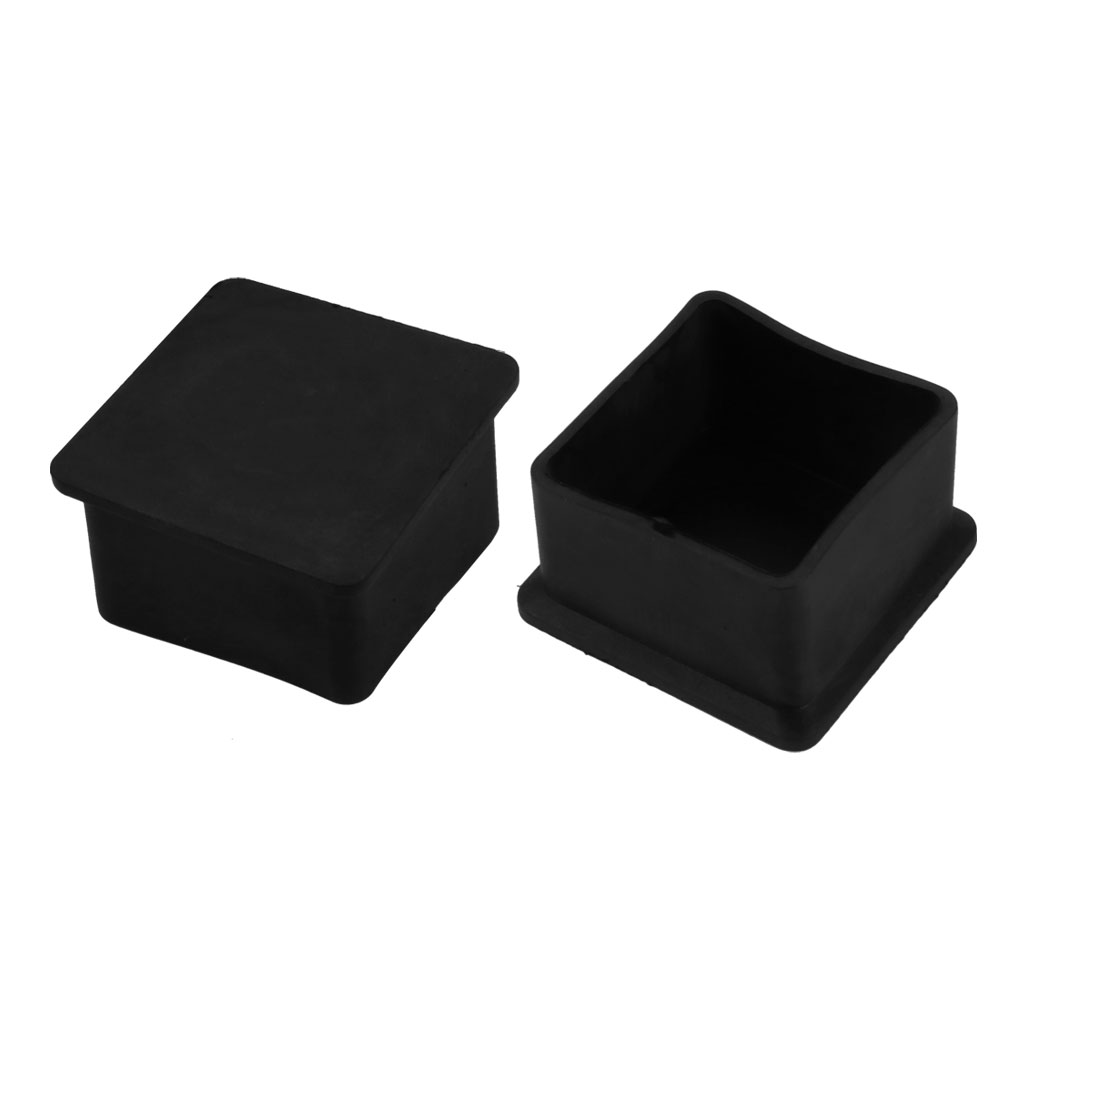 2pcs 40mm x 40mm Pipe Tube Insert Chair Legs Cap Black PVC Tubing Plug